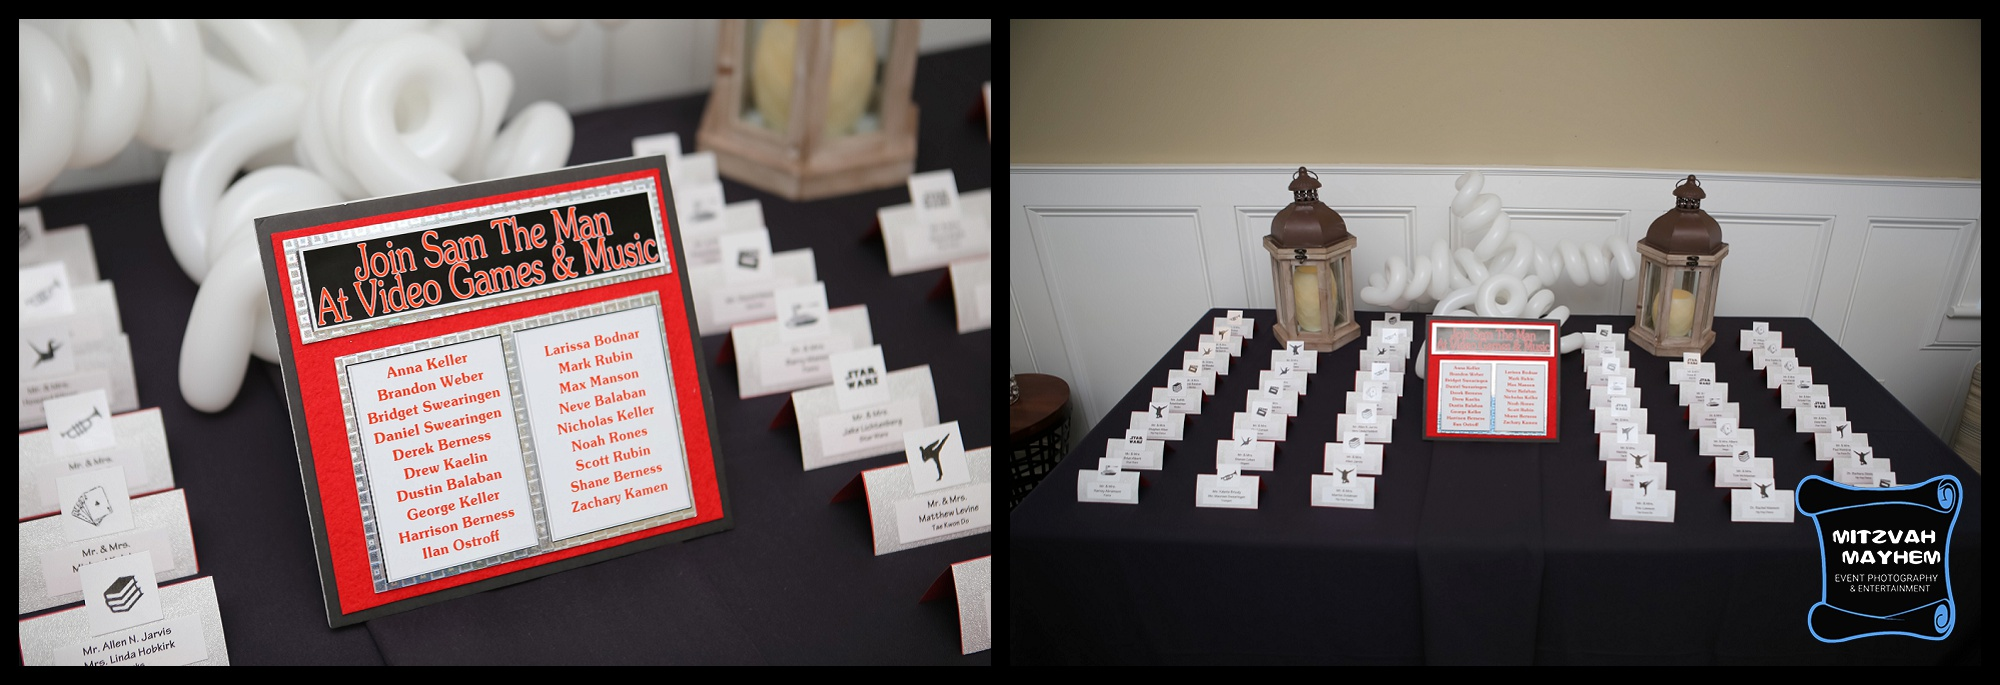 mercer-boathouse-mitzvah-nj-0001.jpg